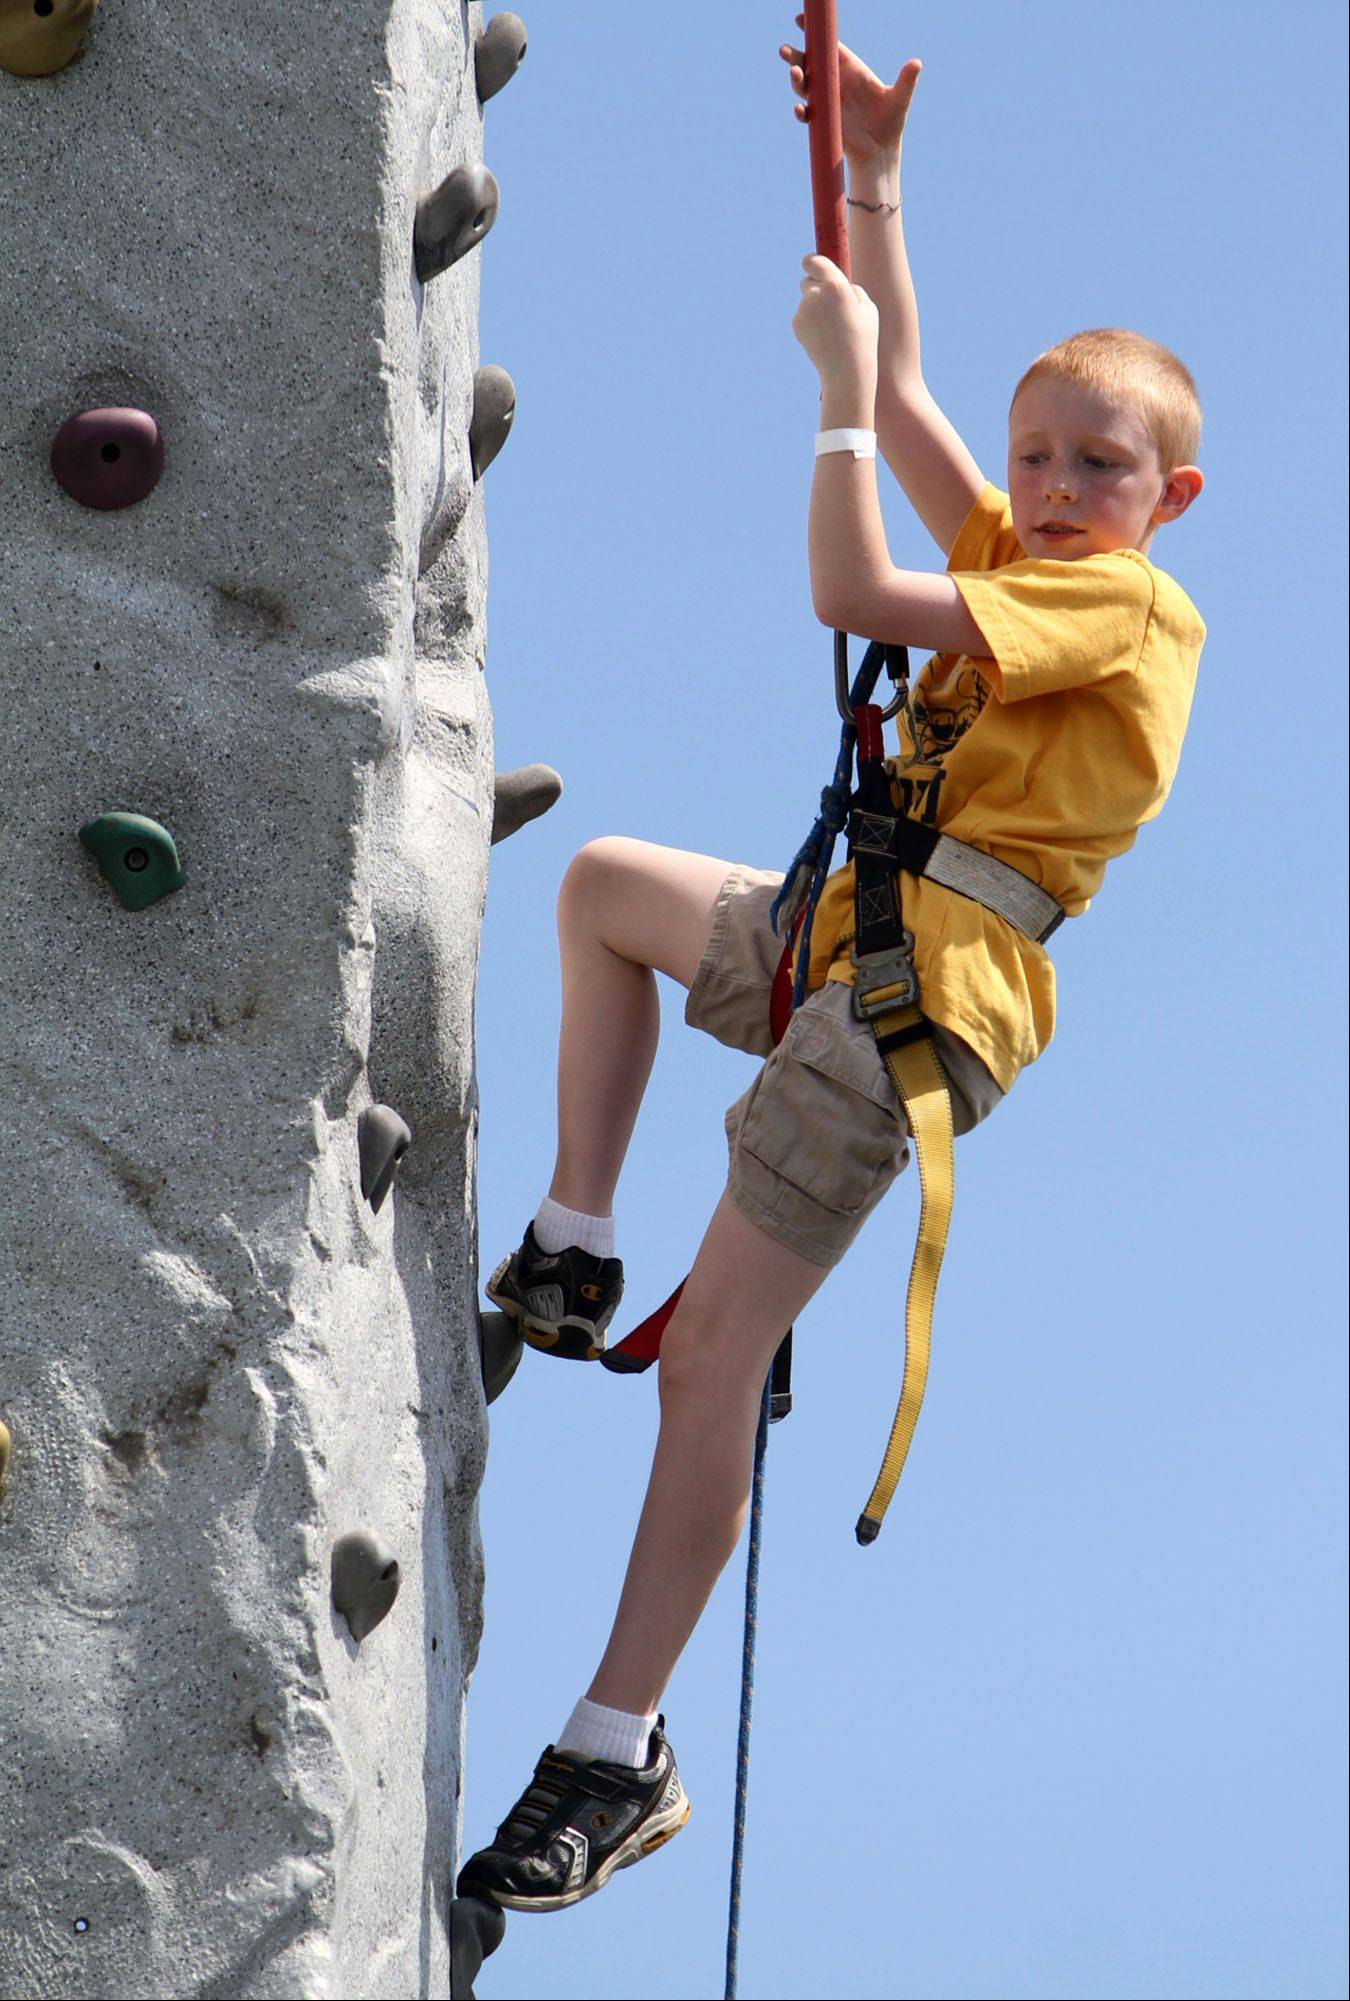 Tommy Jakubowski, 9, of Hainesville climbs the Awesome Amusements climbing wall at Hainesville Fest at Union Square Park on Saturday.